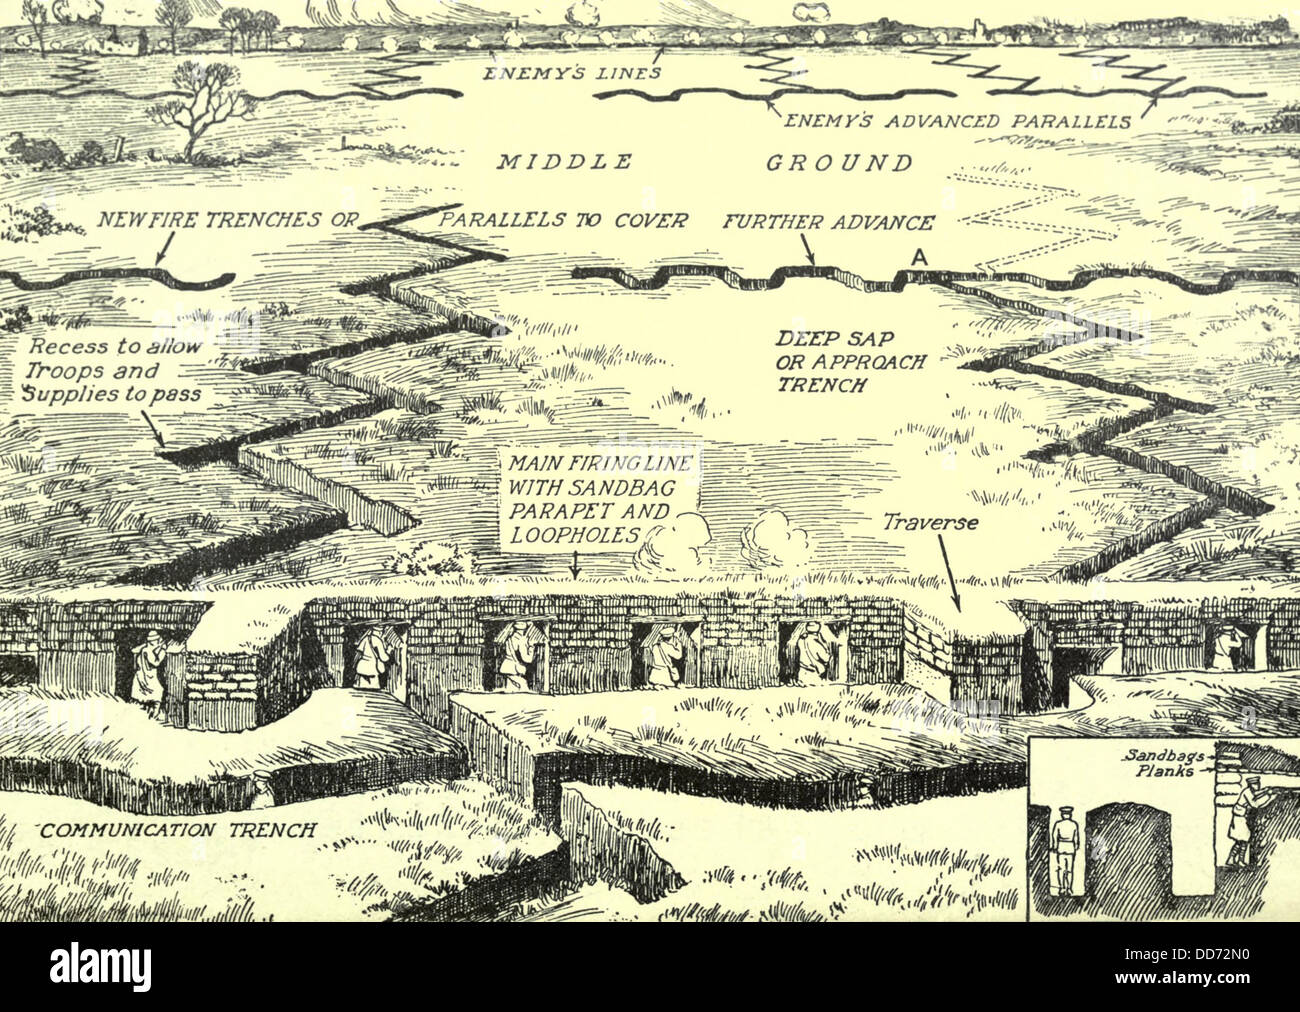 world war 1 diagram of a typical trench complex on the western front DD72N0 world war 1 diagram of a typical trench complex on the western